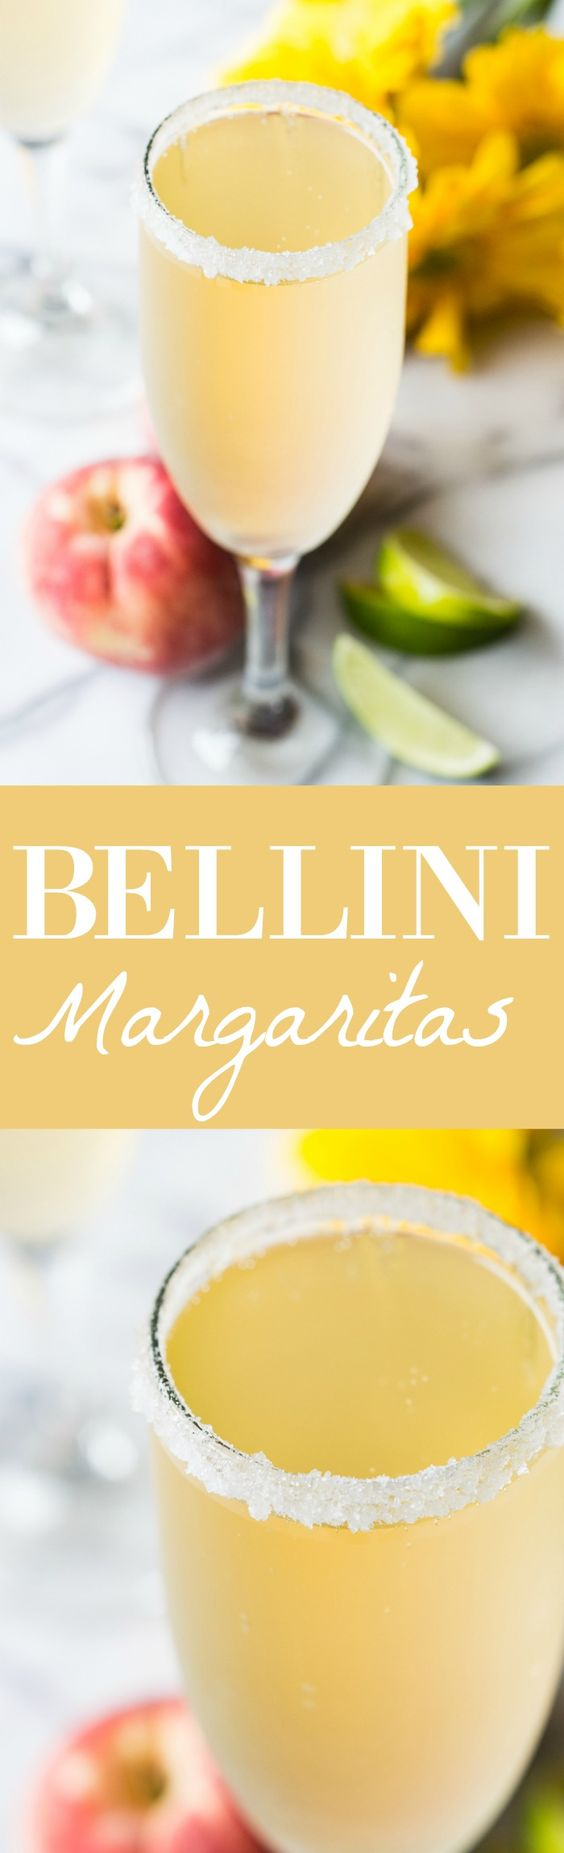 ... bellini and margarita! Made with peach juice, tequila, and champagne